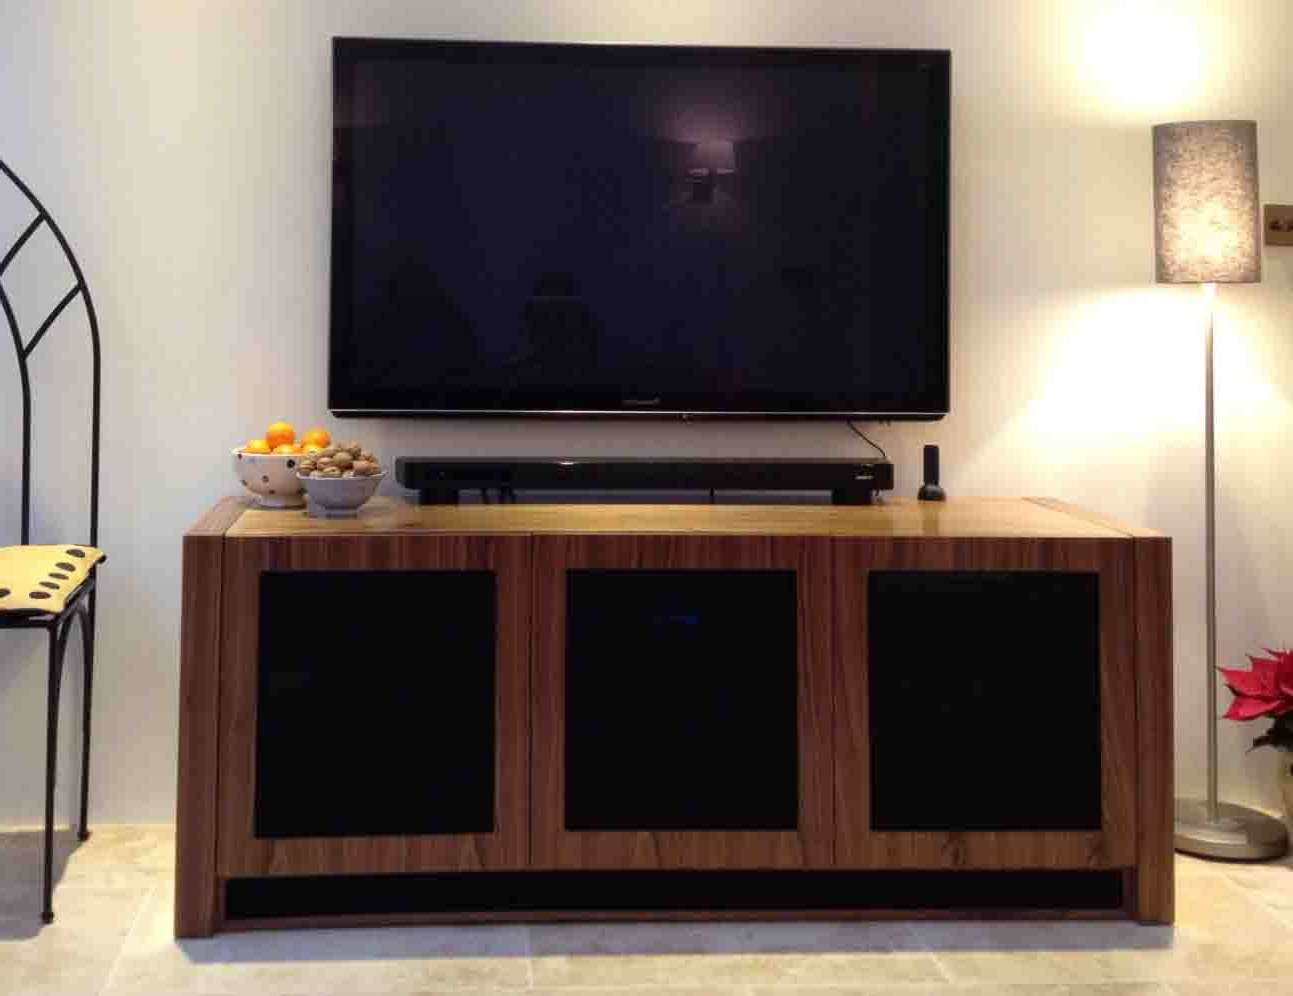 Walnut Av Furniture, Walnut Av Cabinets, Walnut Tv Stands, Walnut Throughout Walnut Tv Cabinets With Doors (View 19 of 20)